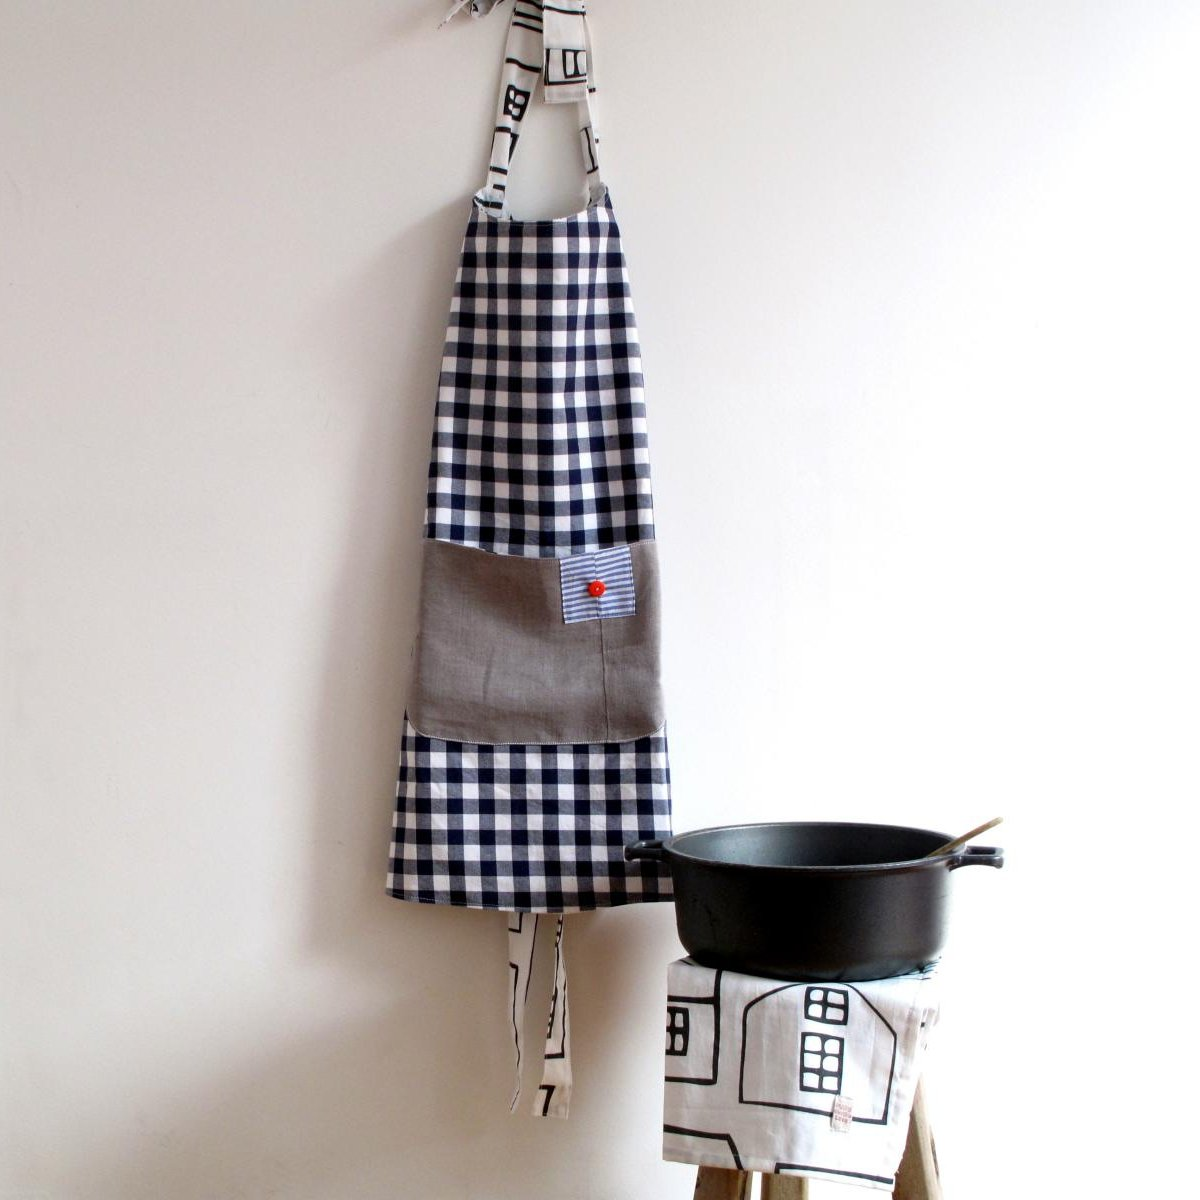 photo credit: Love your home - apron & pot holders via photopin (license)